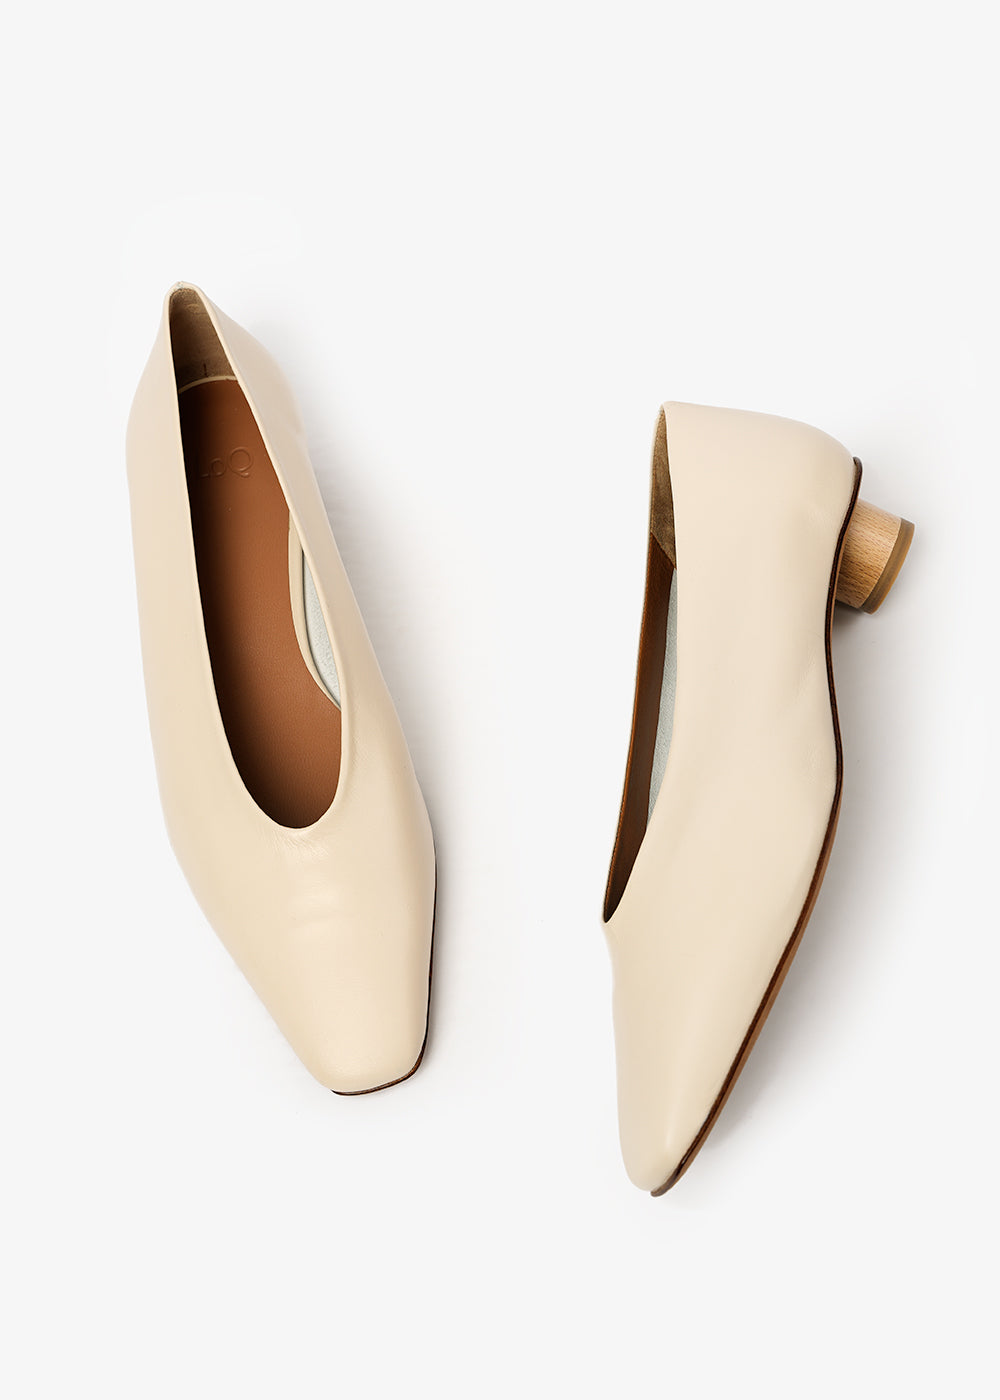 LoQ Crema Paz Heels — Shop sustainable fashion and slow fashion at New Classics Studios